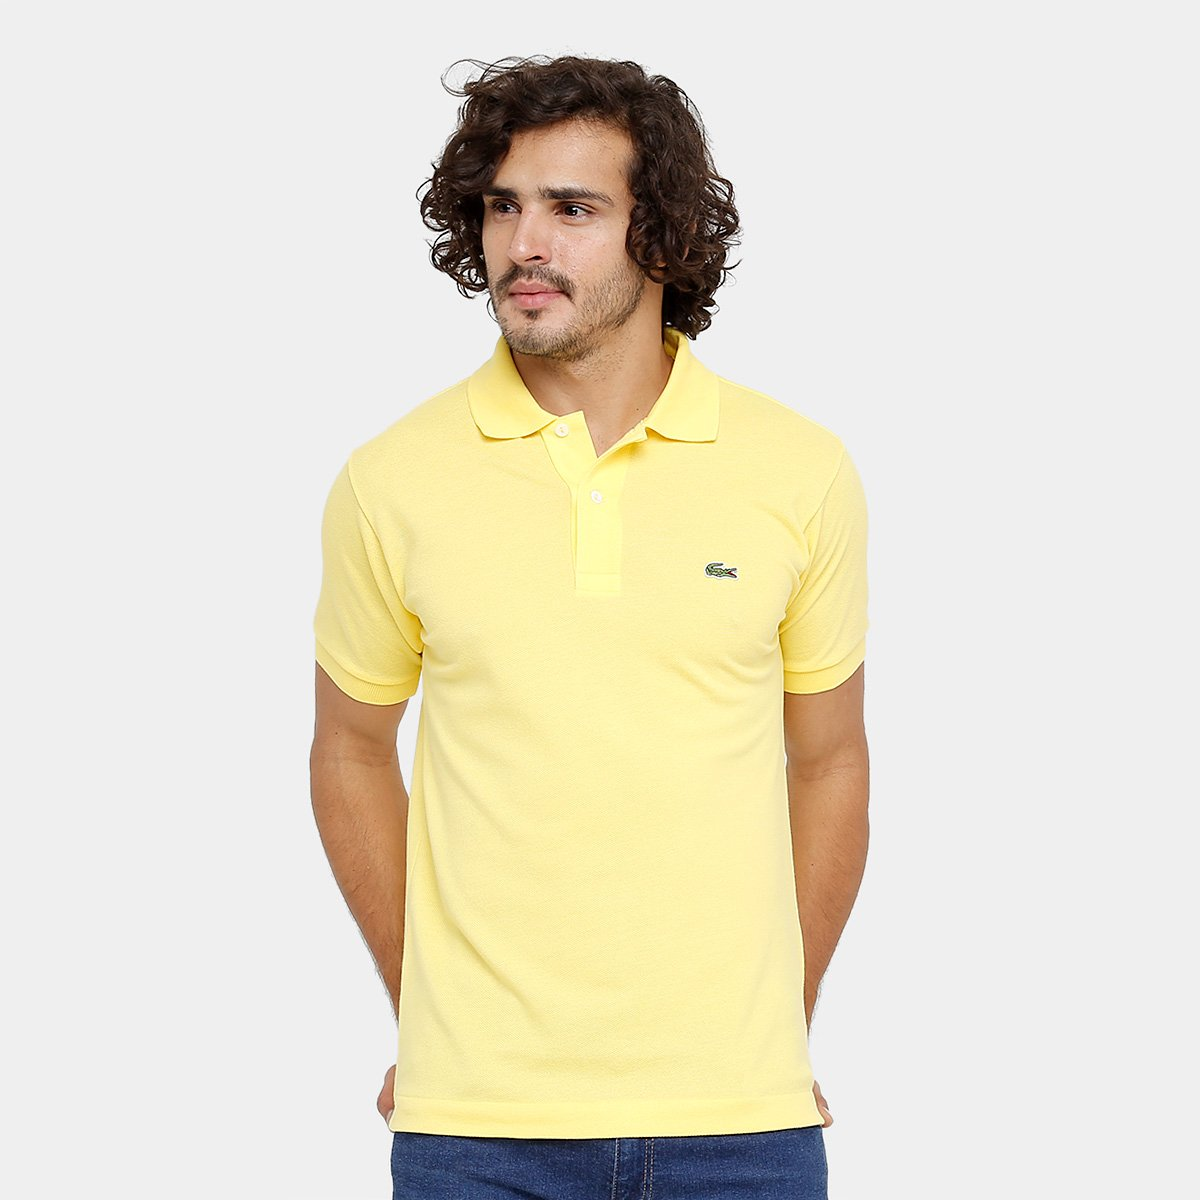 1be4e7f57d0 Camisa Polo Lacoste Piquet Original Fit Masculina - Shopping TudoAzul